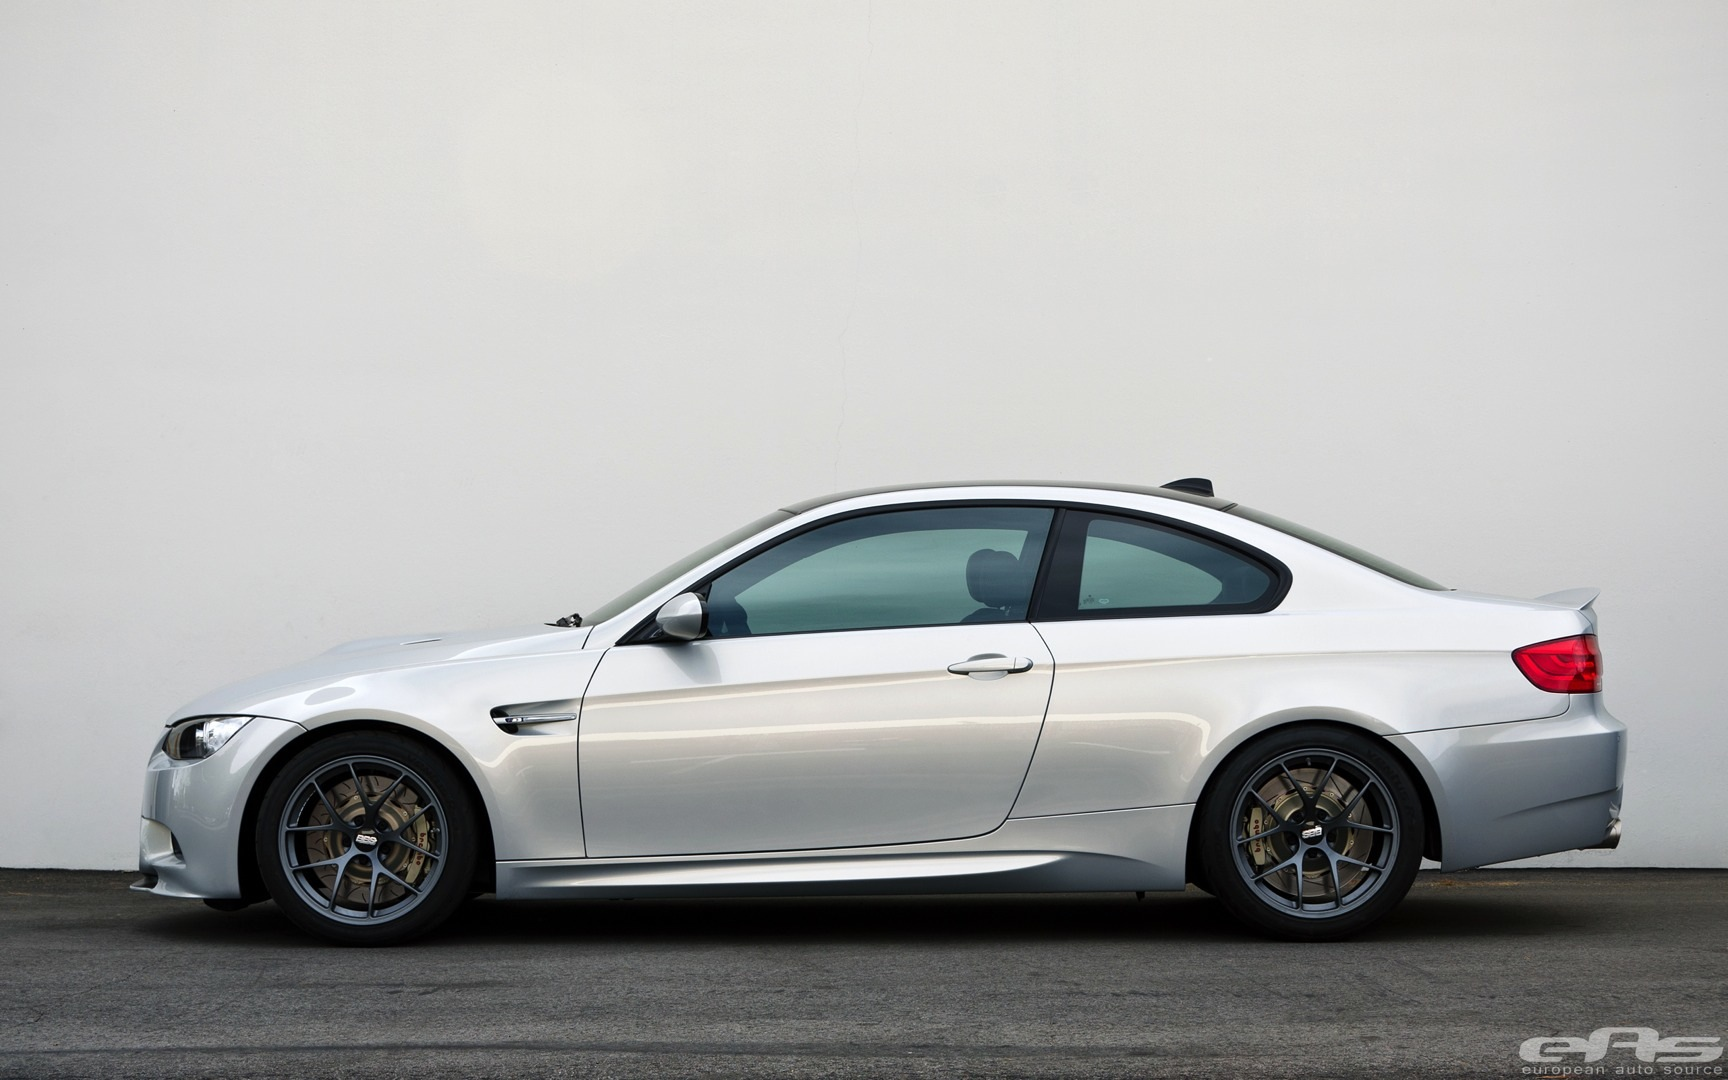 Bmw E92 M3 Gets A Complete Make Over At Eas Autoevolution